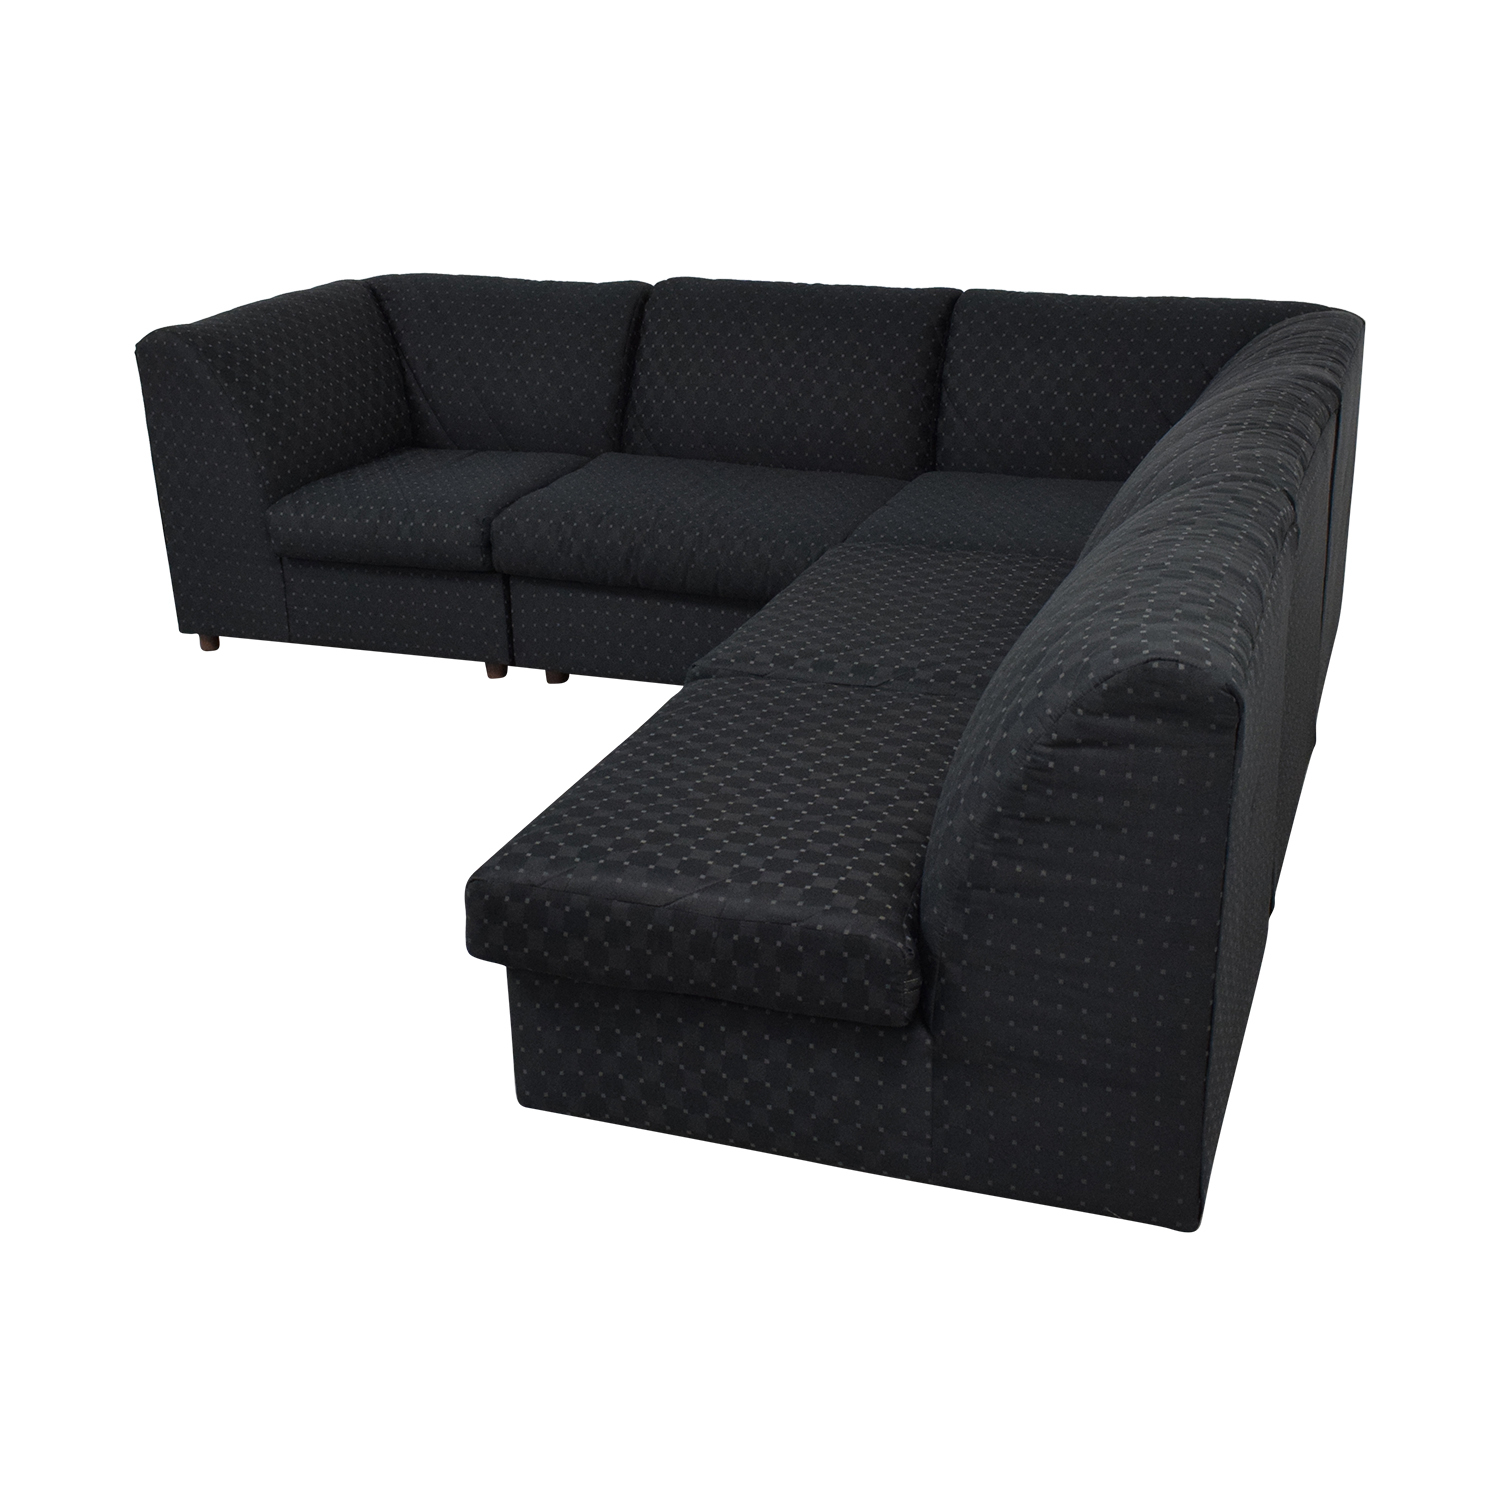 62% Off – Broyhill Furniture Broyhill Furniture Corner In Broyhill Sectional Sofas (View 13 of 15)